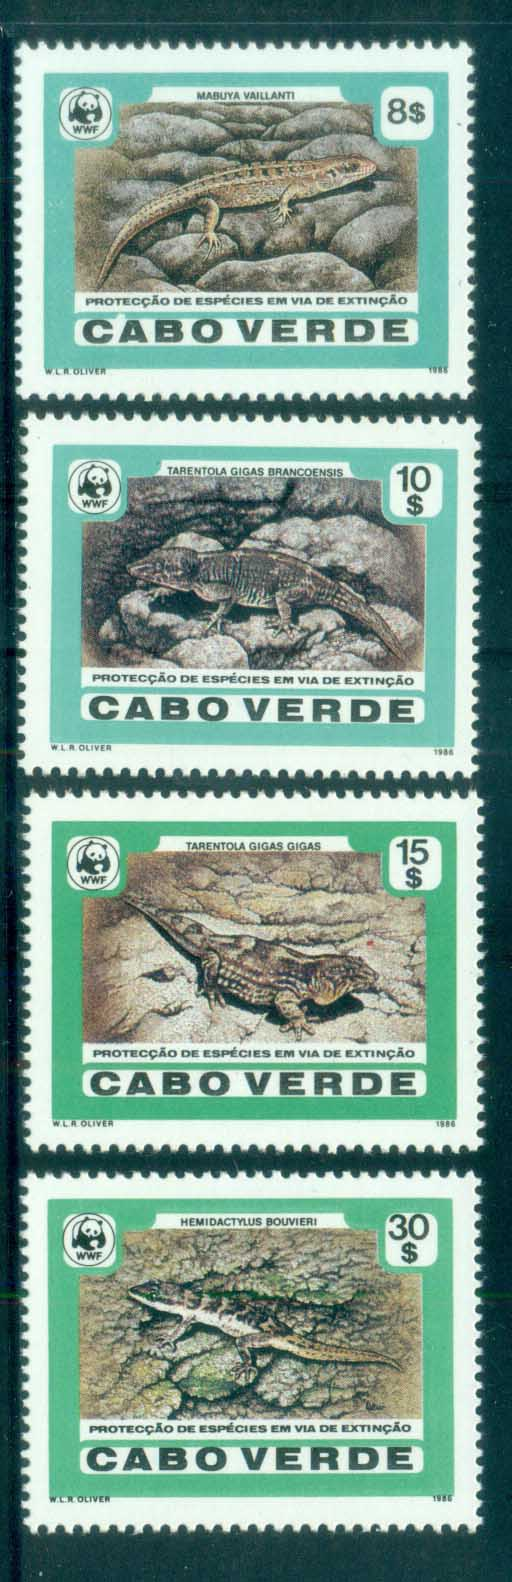 Cape Verde 1986 WWF Desert Island Lizards MUH lot76143